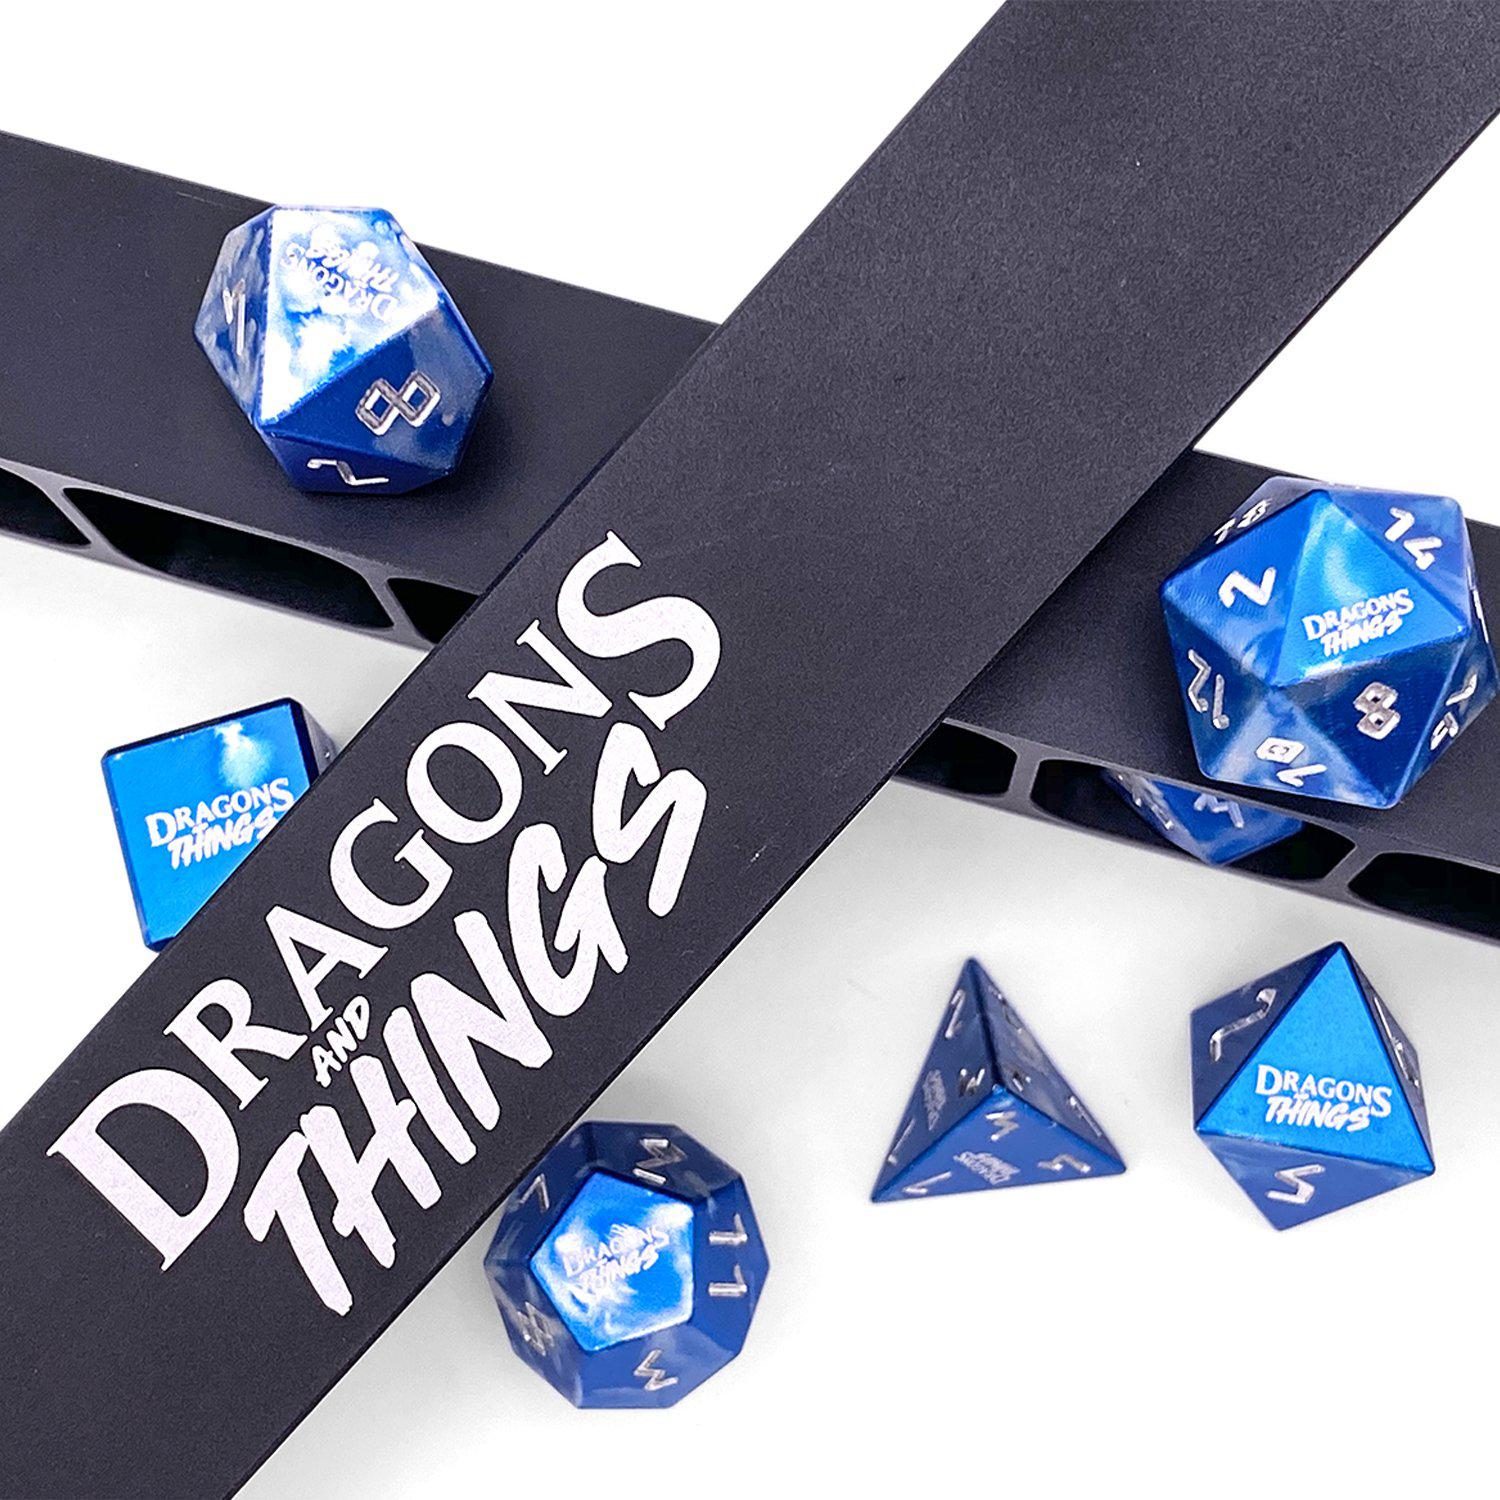 Dragons and Things Holy Smite - Precision CNC Aluminum Dice Set with Dice Vault